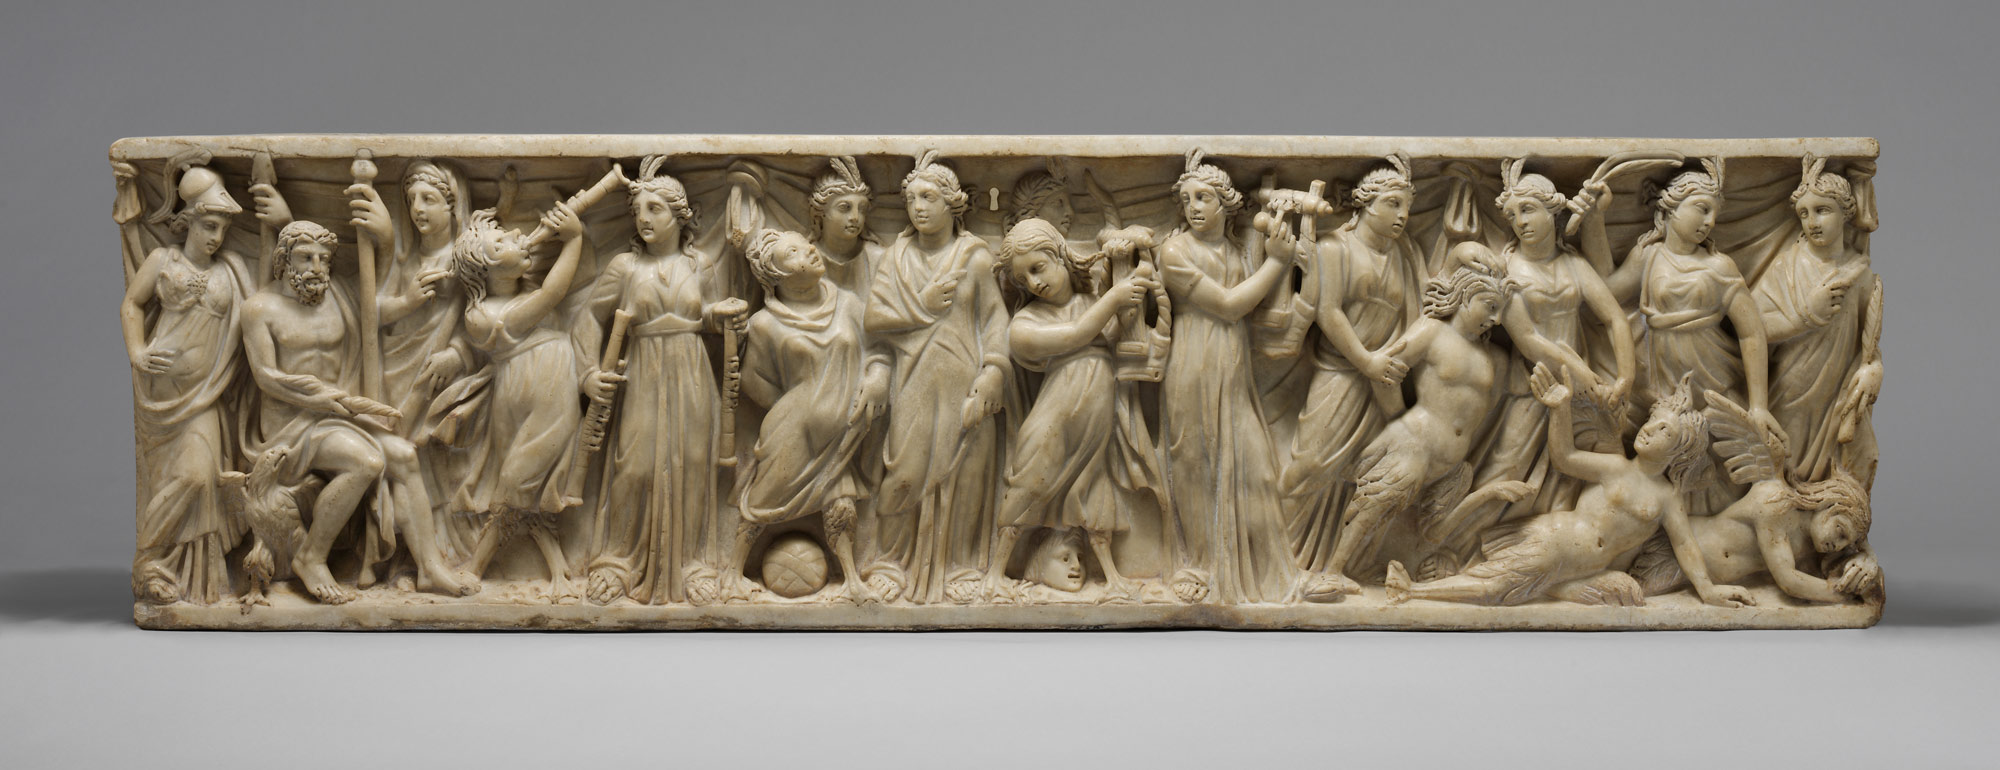 r sarcophagi essay heilbrunn timeline of art history the marble sarcophagus the contest between the muses and the sirens